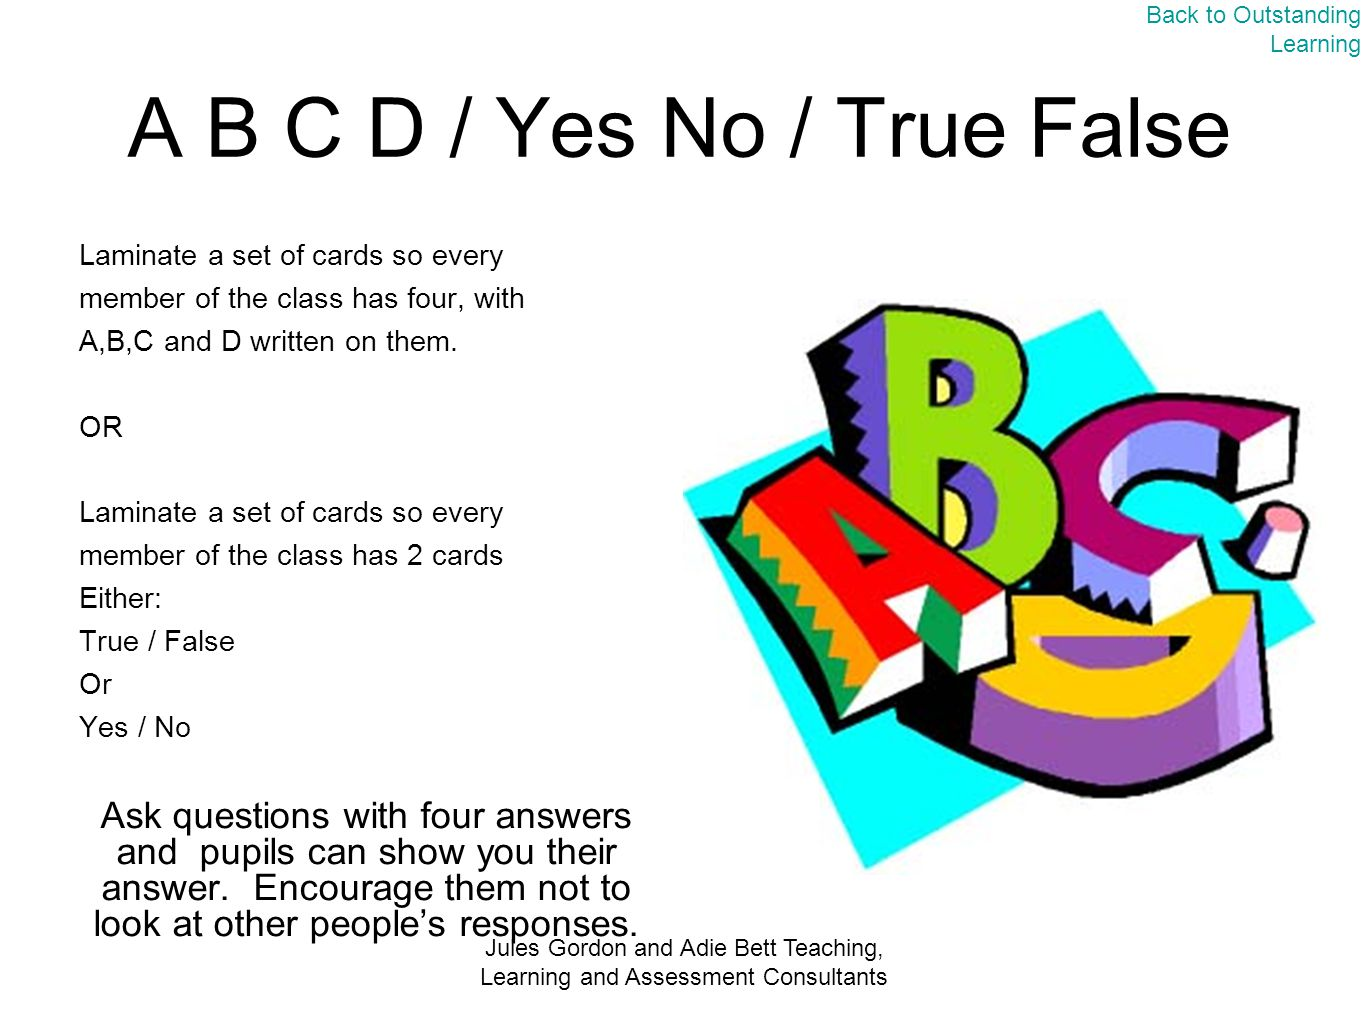 Jules Gordon and Adie Bett Teaching, Learning and Assessment Consultants A B C D / Yes No / True False Laminate a set of cards so every member of the class has four, with A,B,C and D written on them.